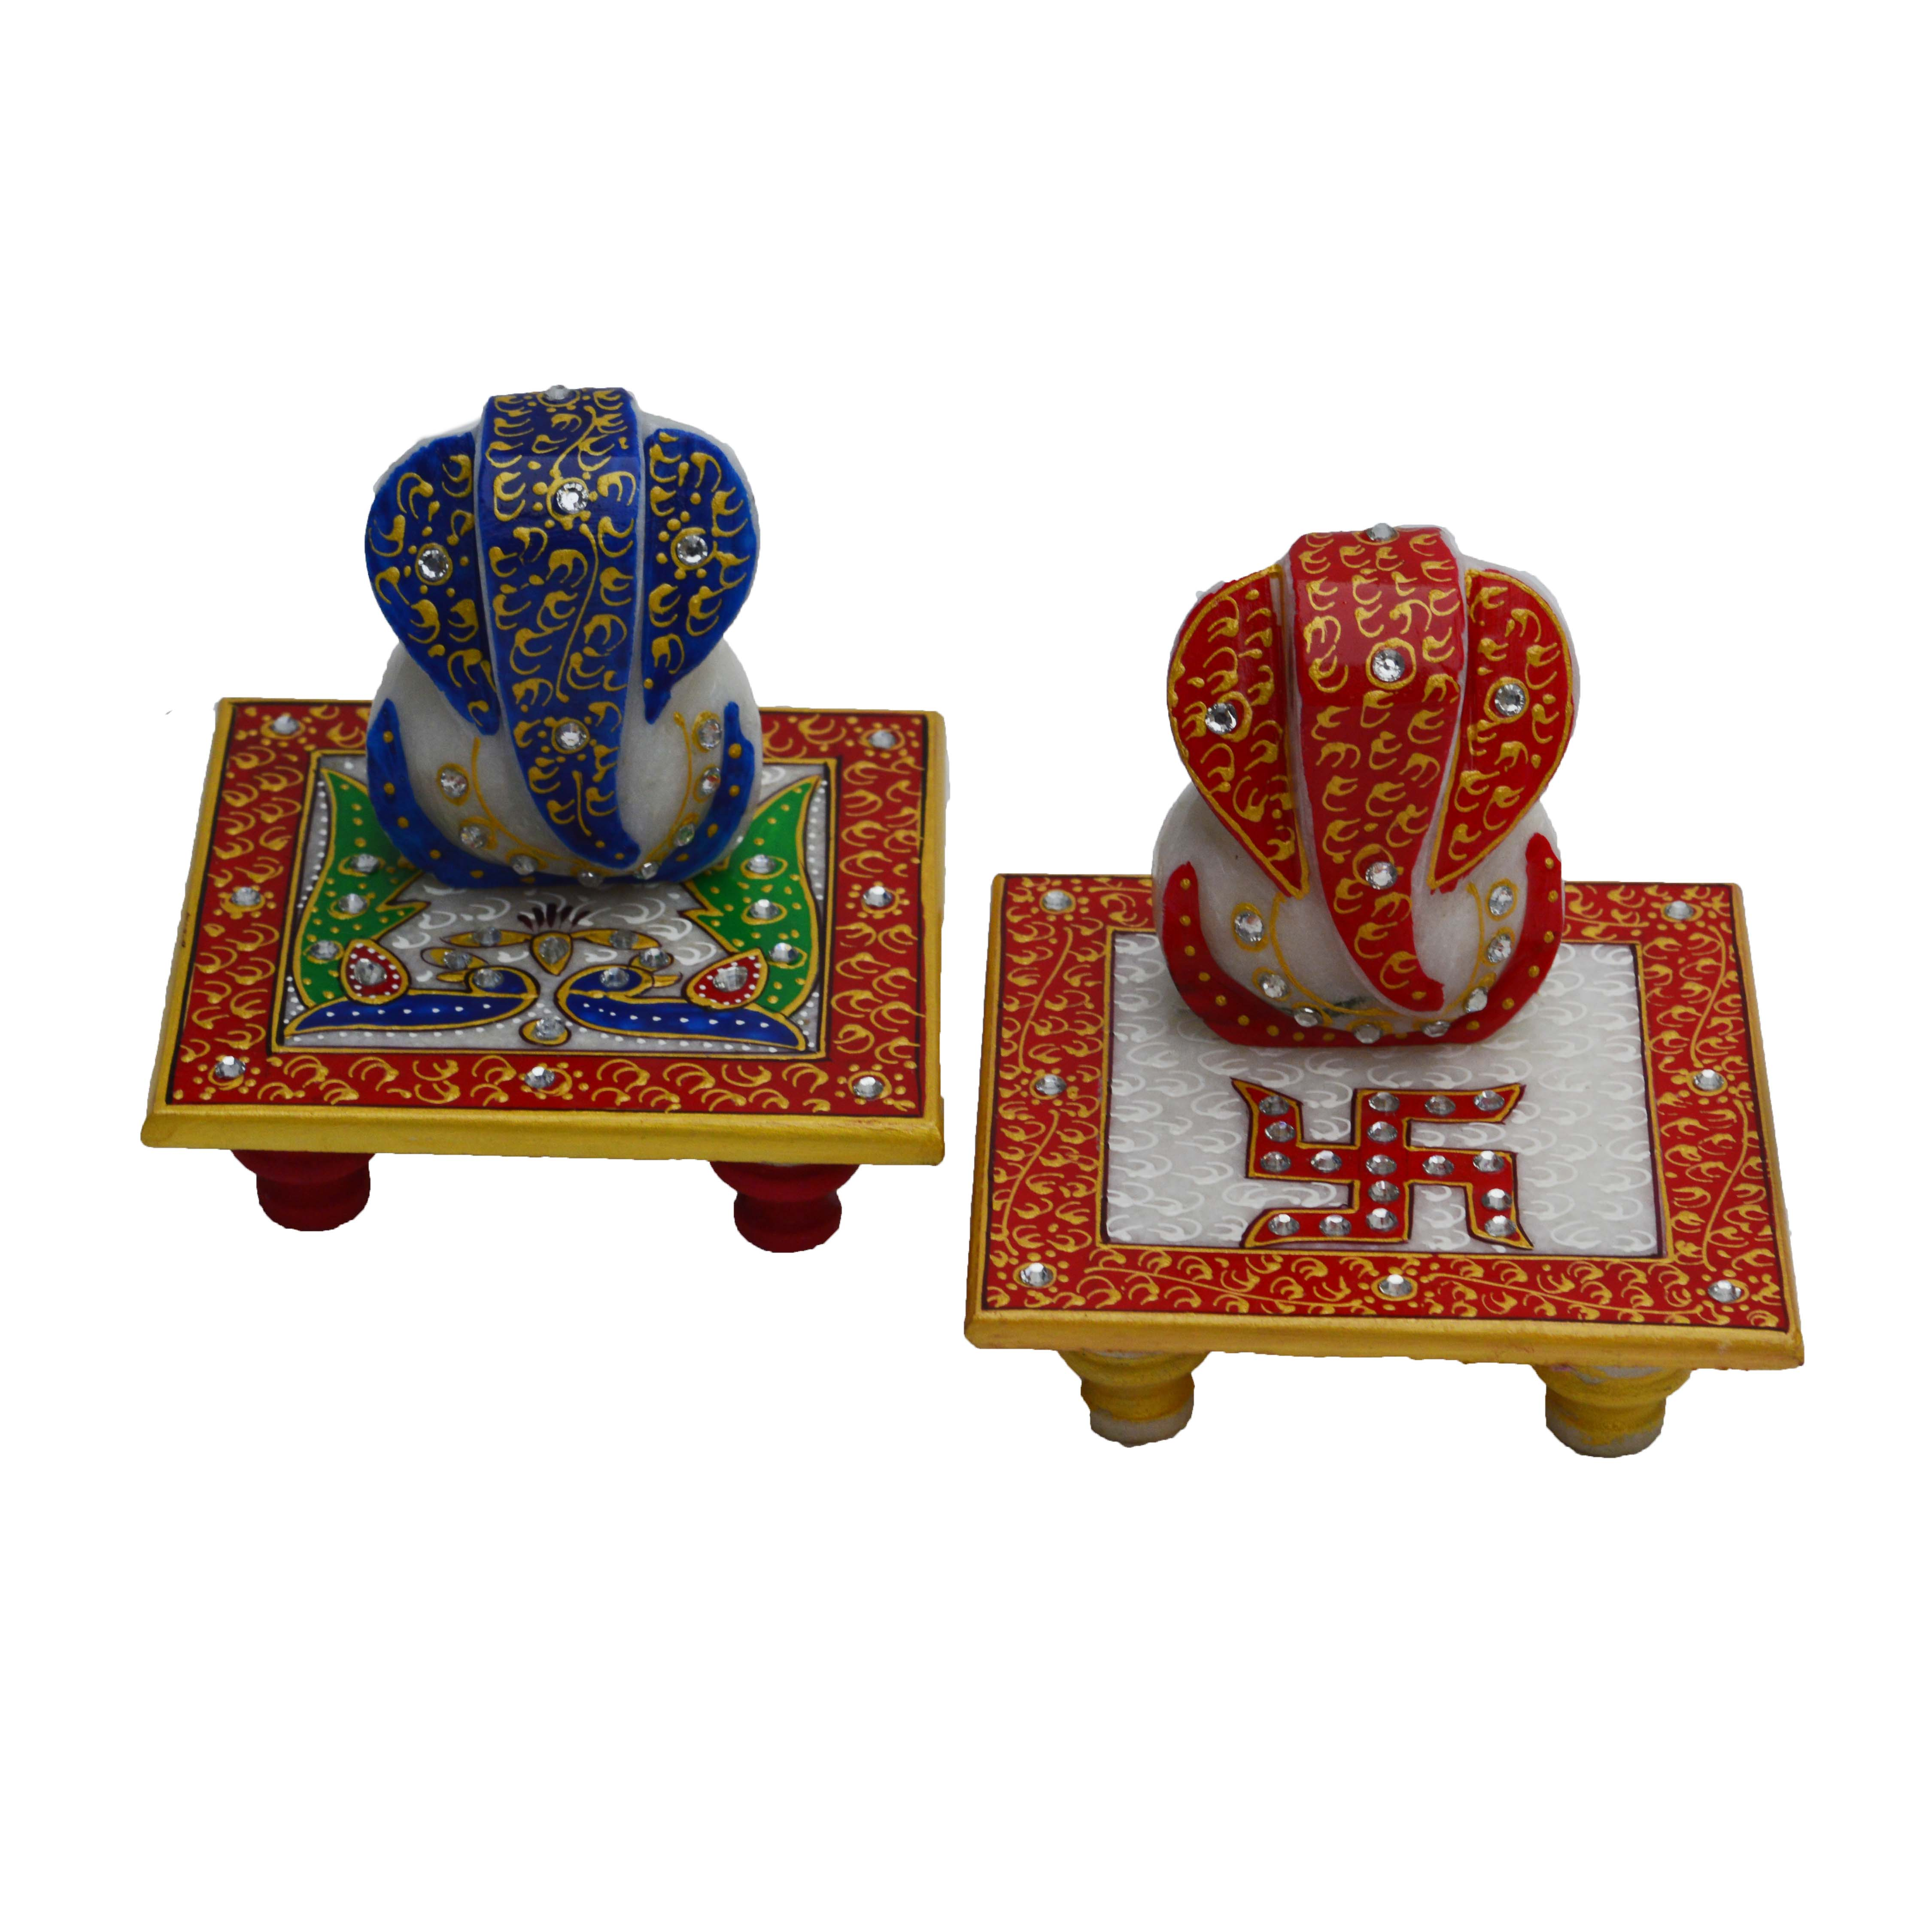 Combo of Lord Ganesha Marble Chowkis with Peocock and Swastik Indian Home Decor